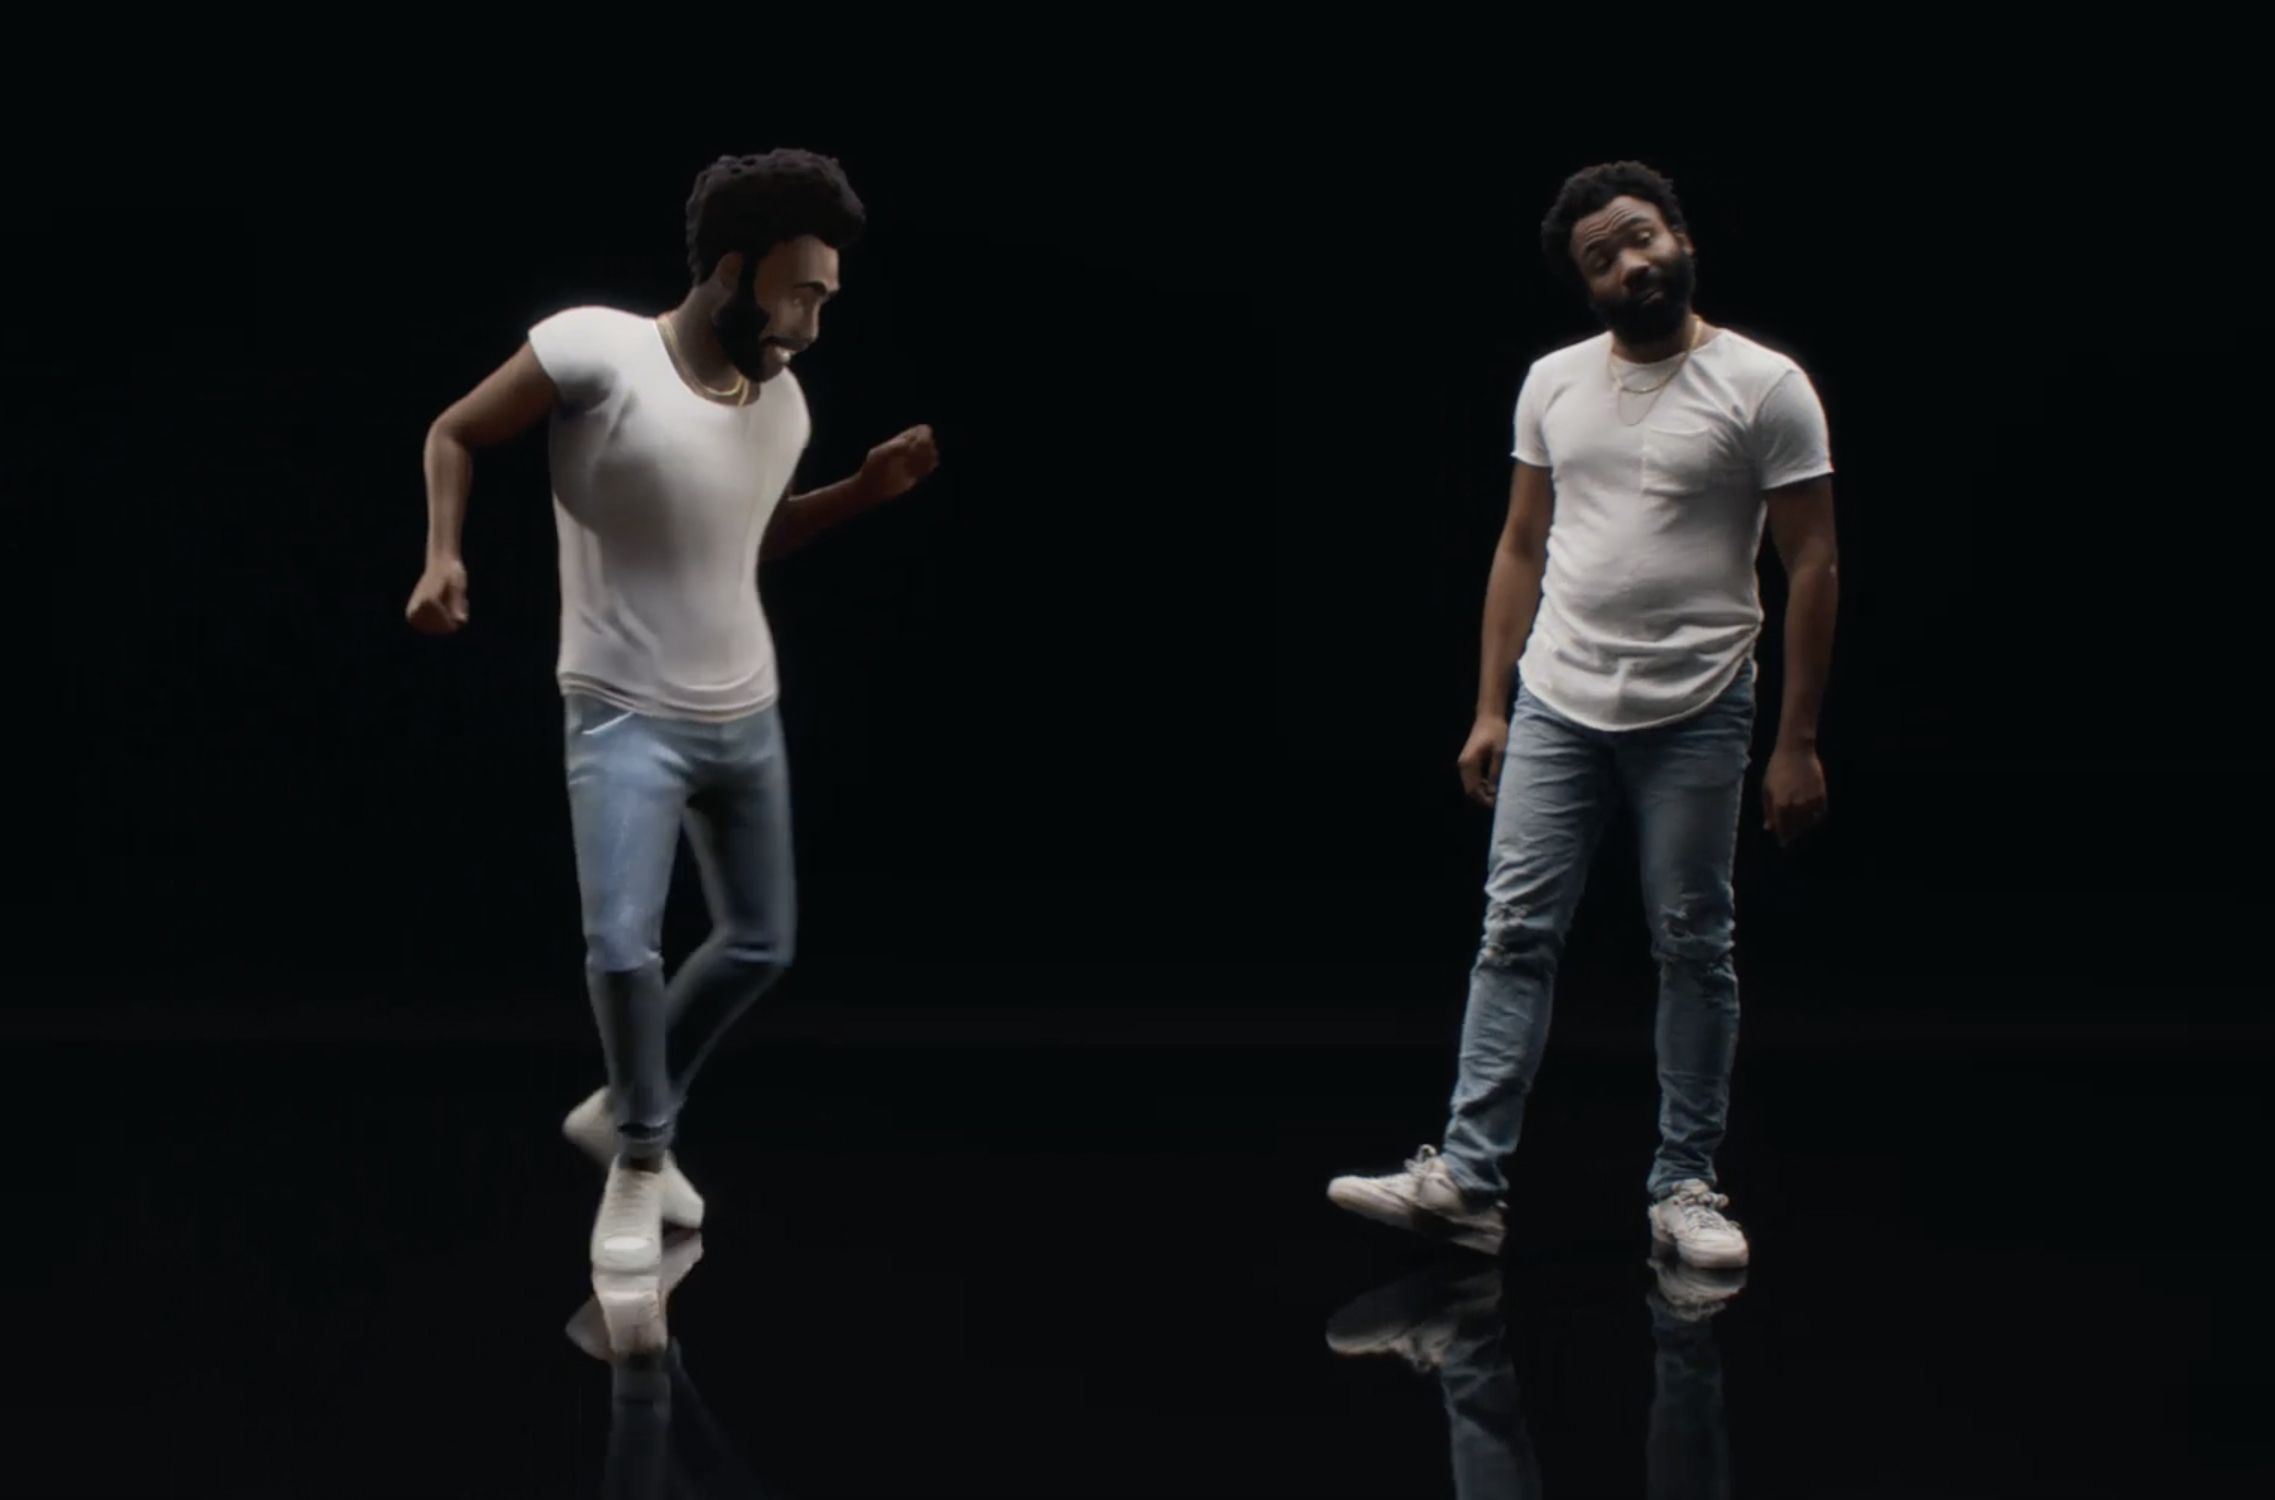 Childish Gambino Performs New Song in Google Pixel Ad